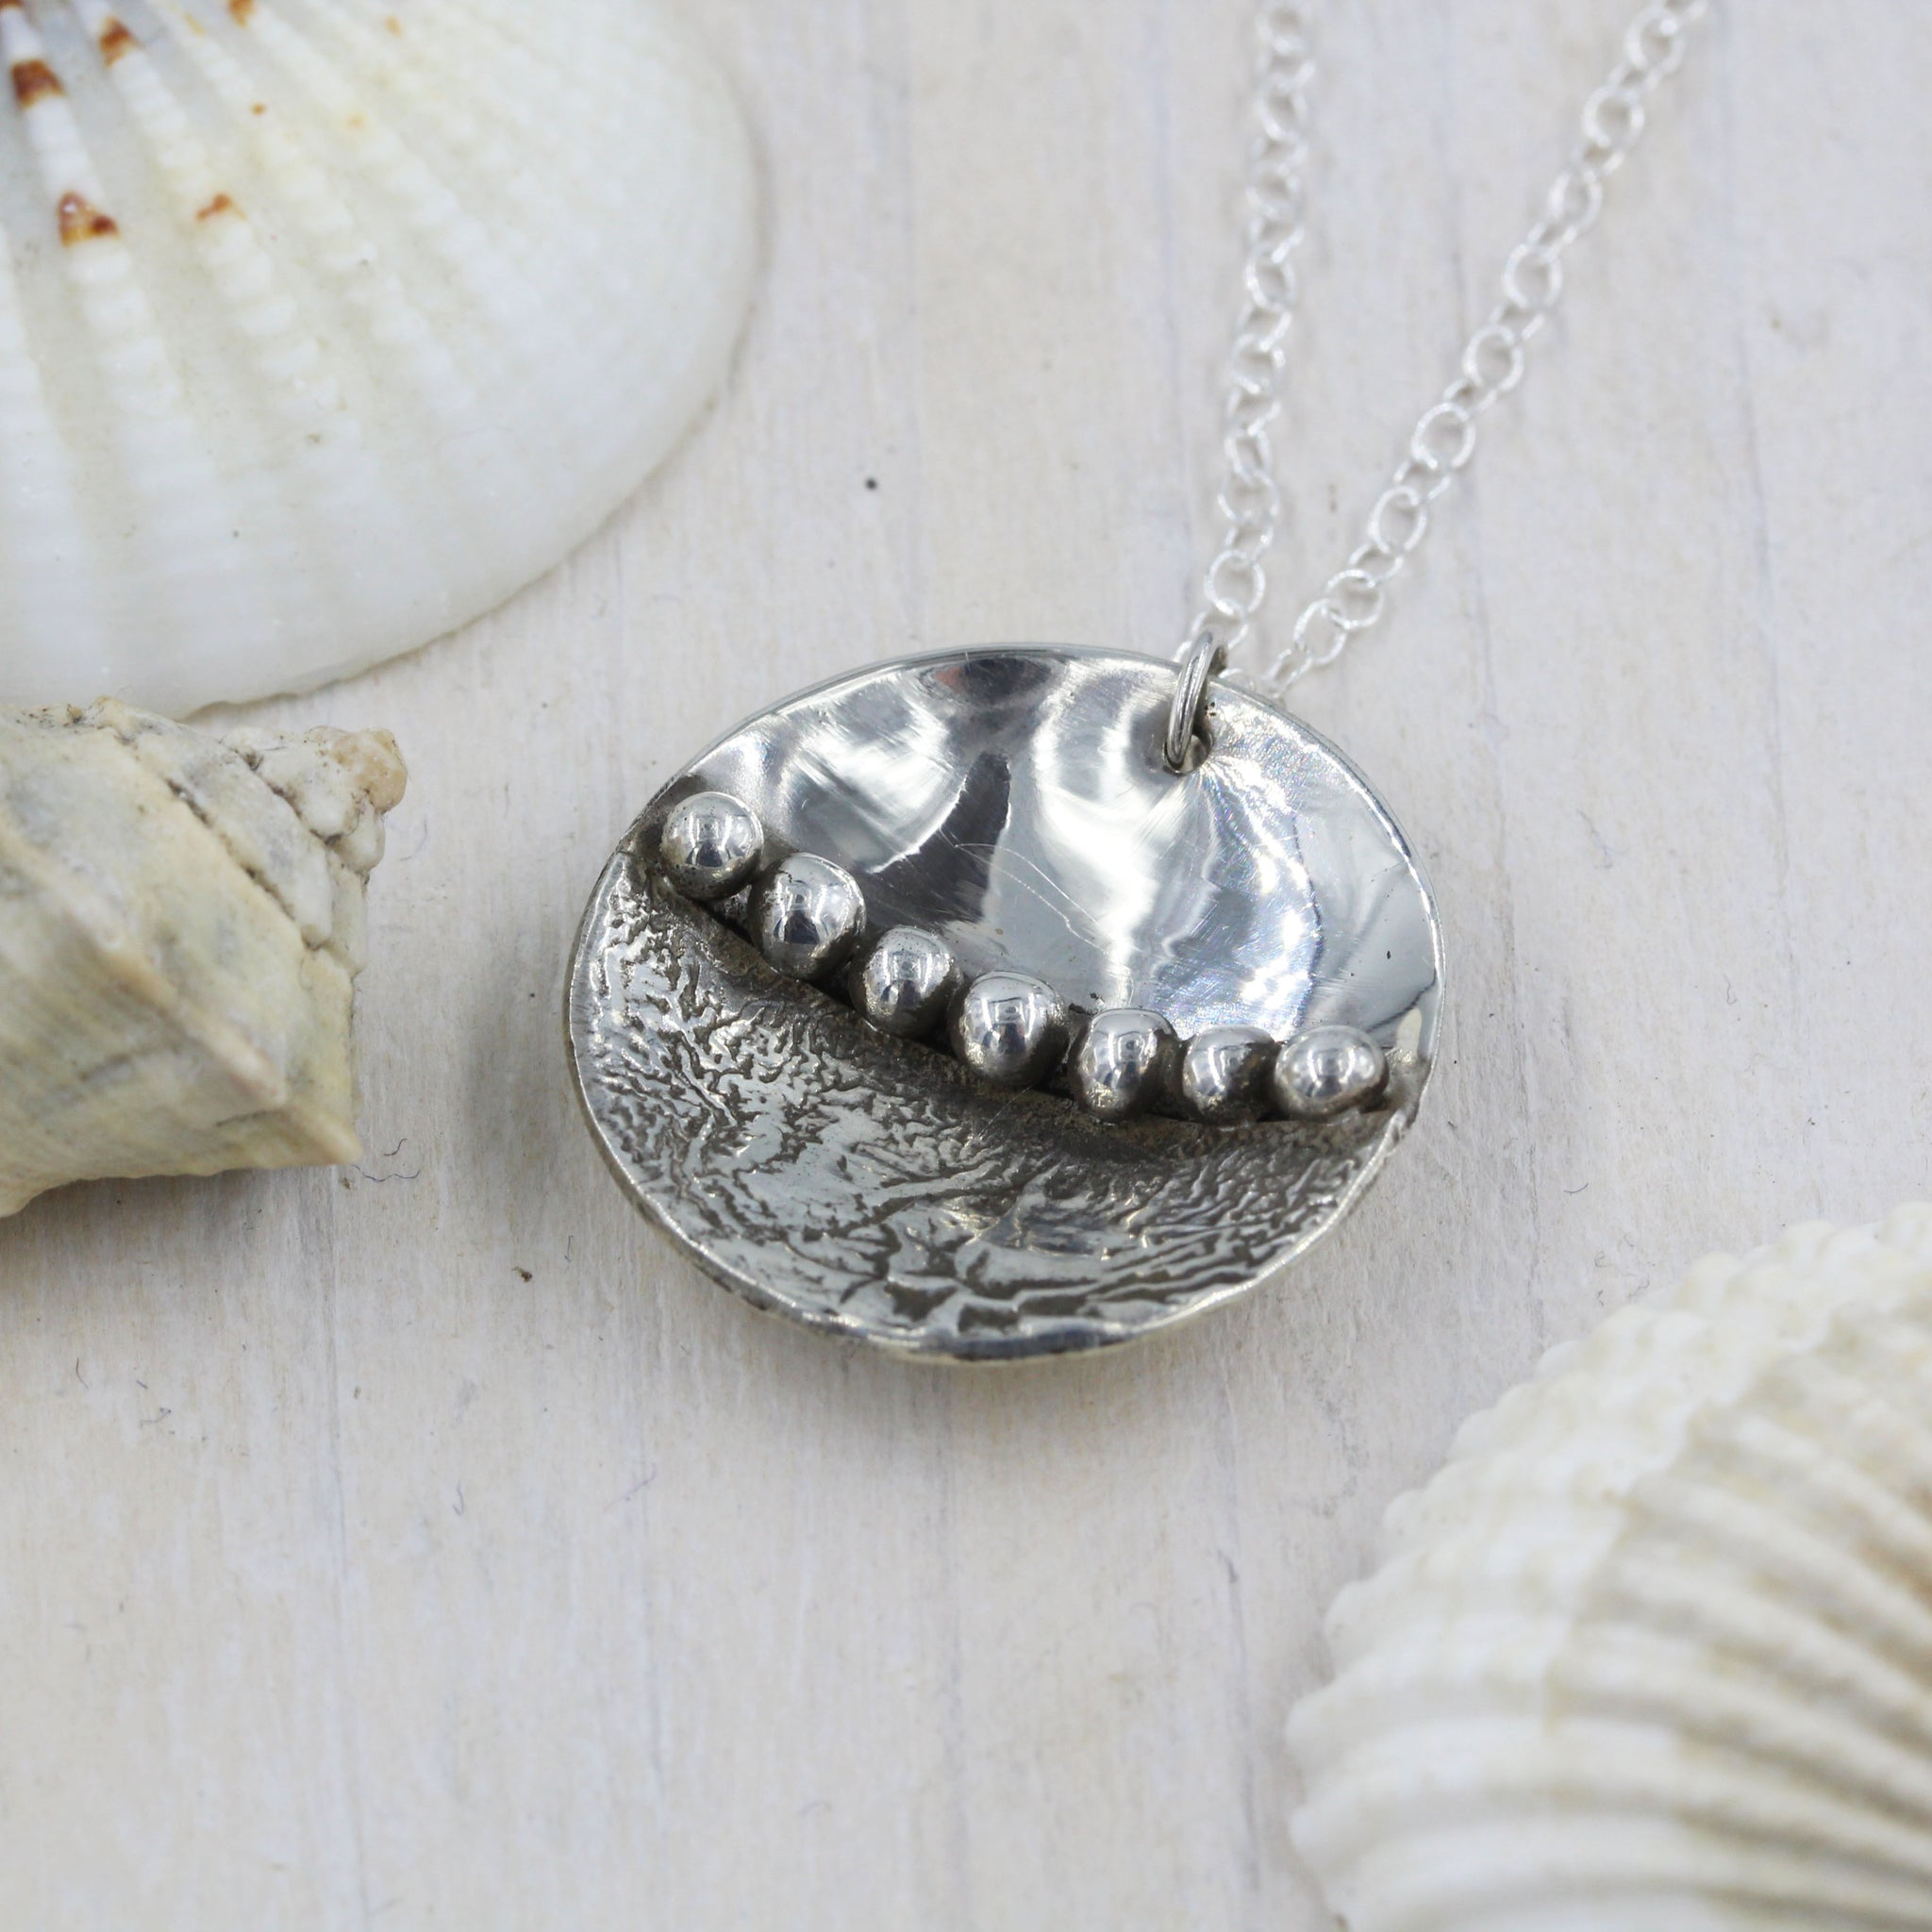 Handmade sea inspired, sterling silver necklace